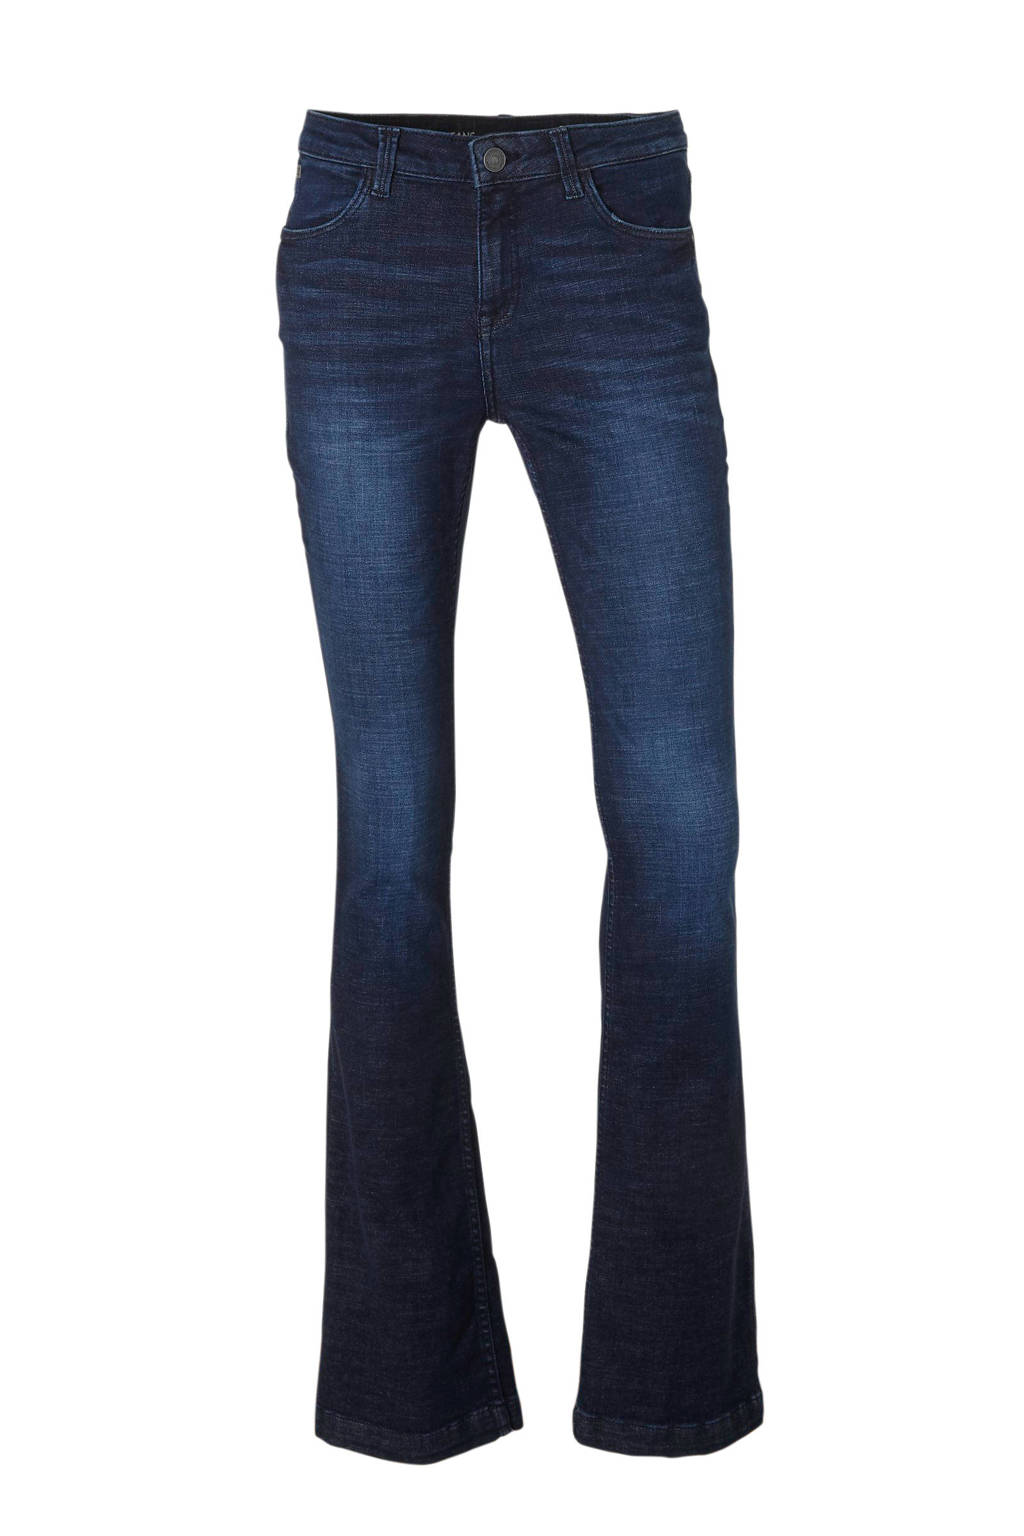 C&A The Denim bootcut jeans, Donkerblauw